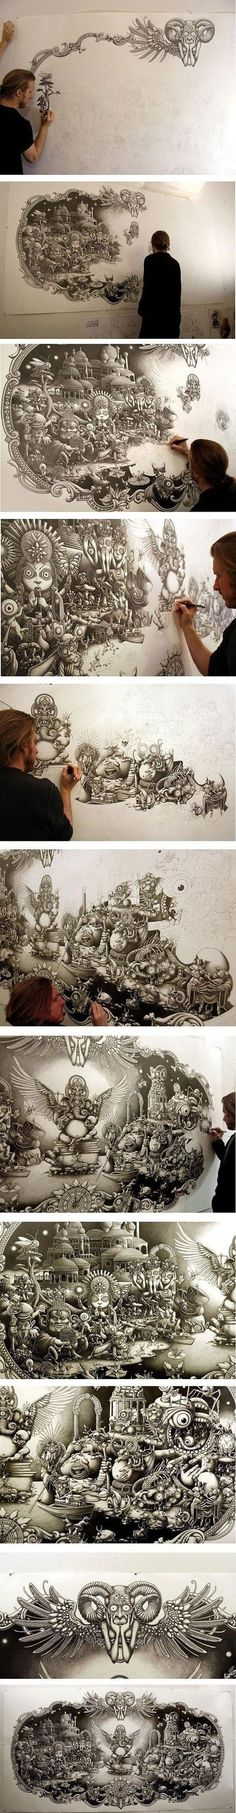 Amazing pencil art...